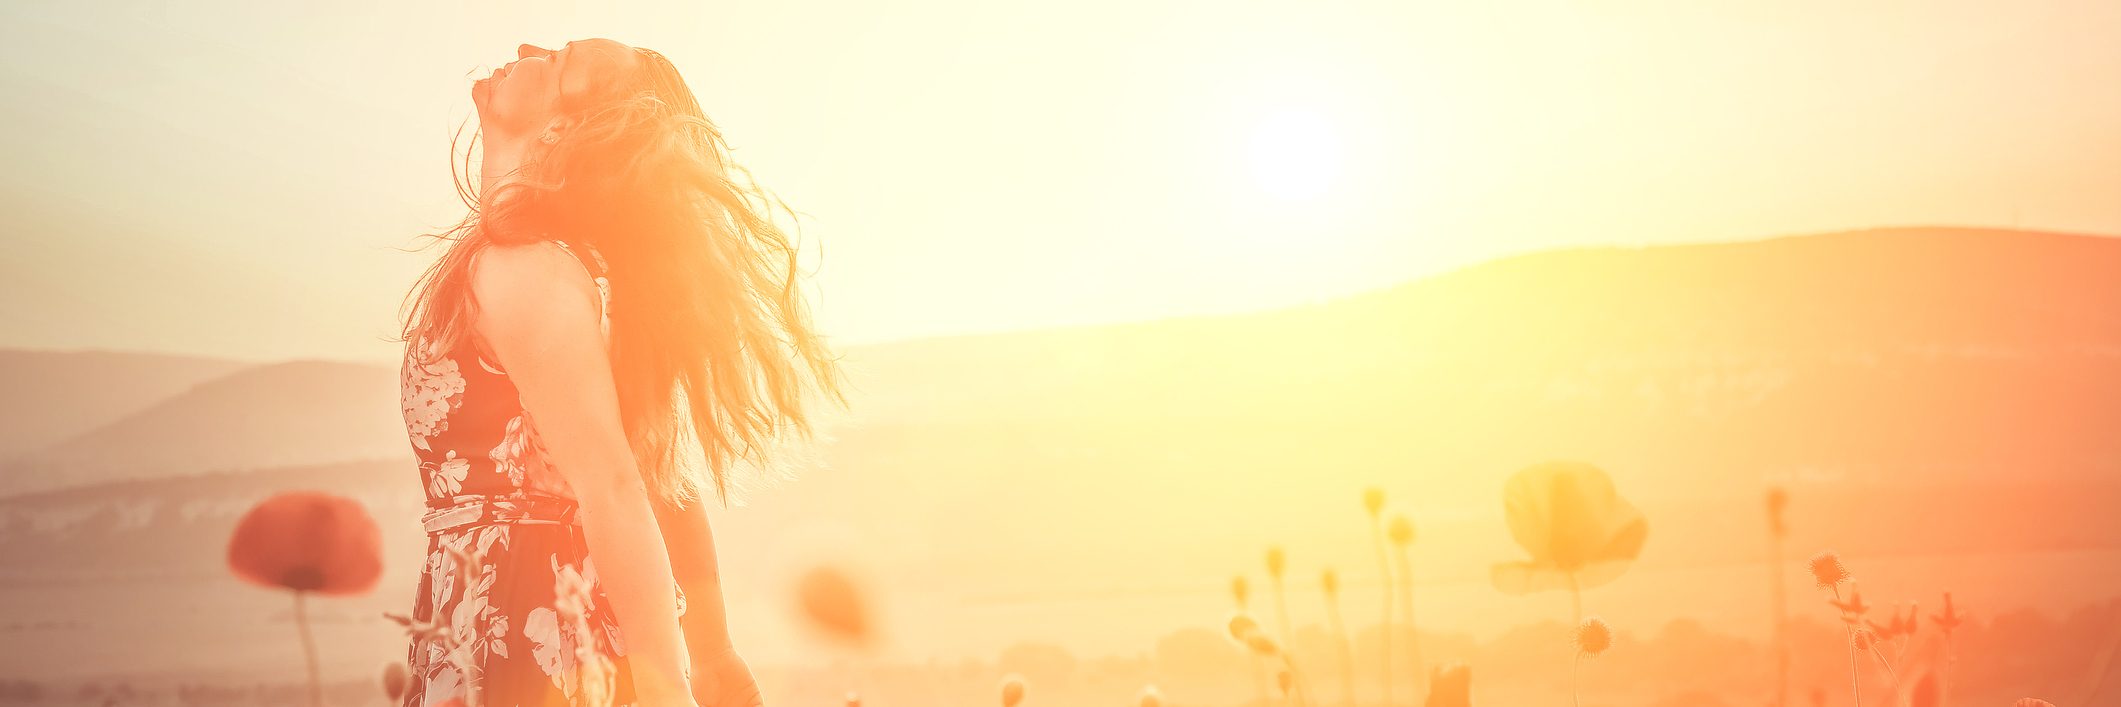 A woman in a field of flowers, the sun glowing from a distance.